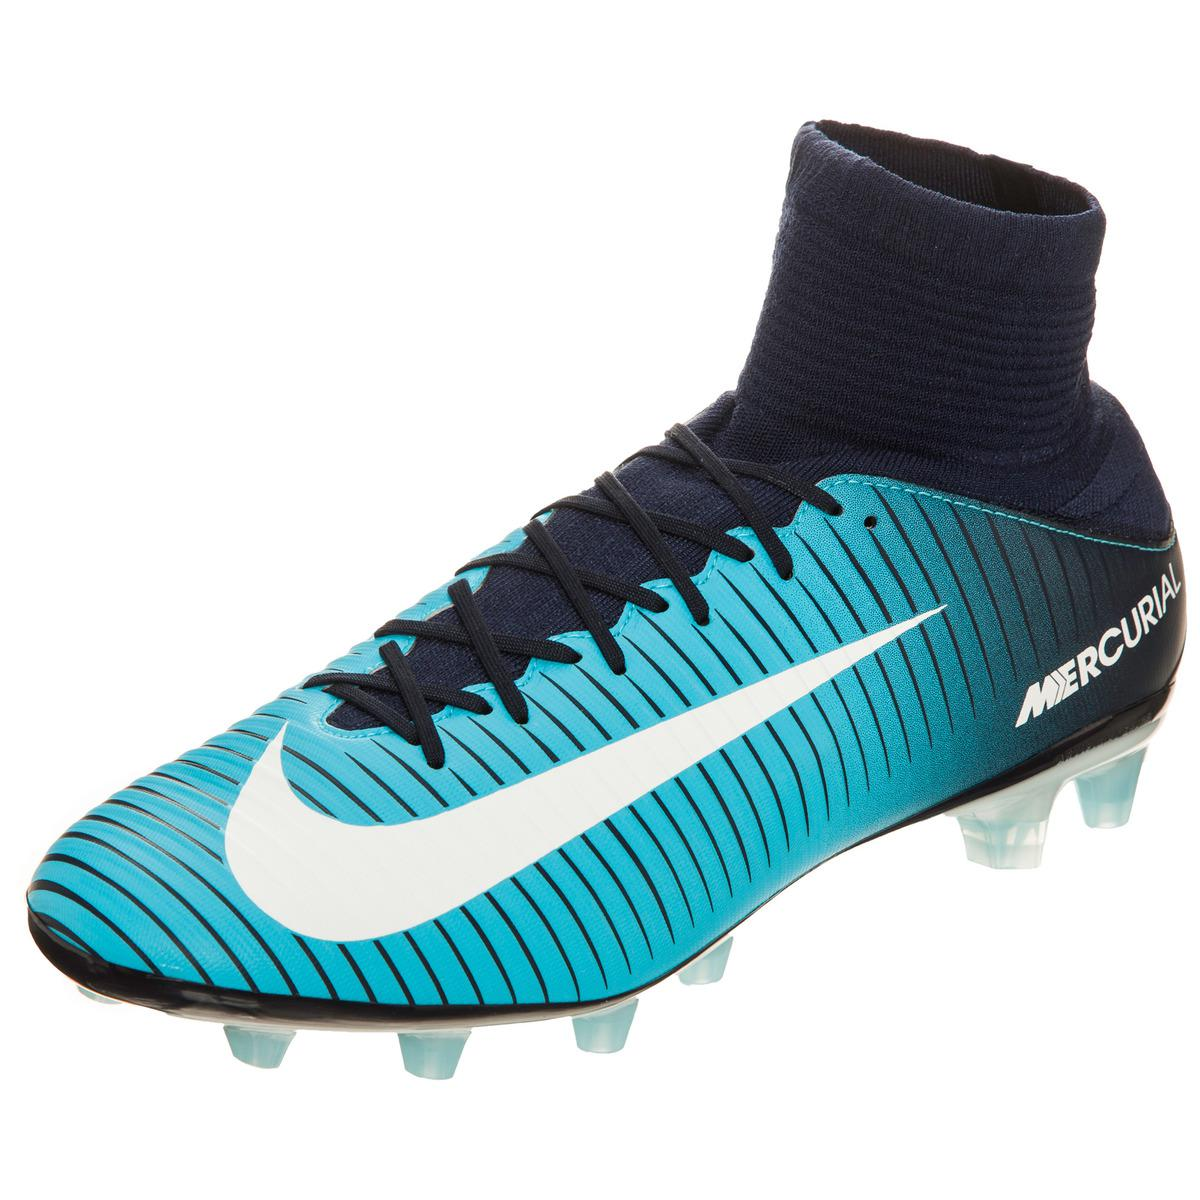 lyst nike mercurial veloce iii ag pro football boots in. Black Bedroom Furniture Sets. Home Design Ideas